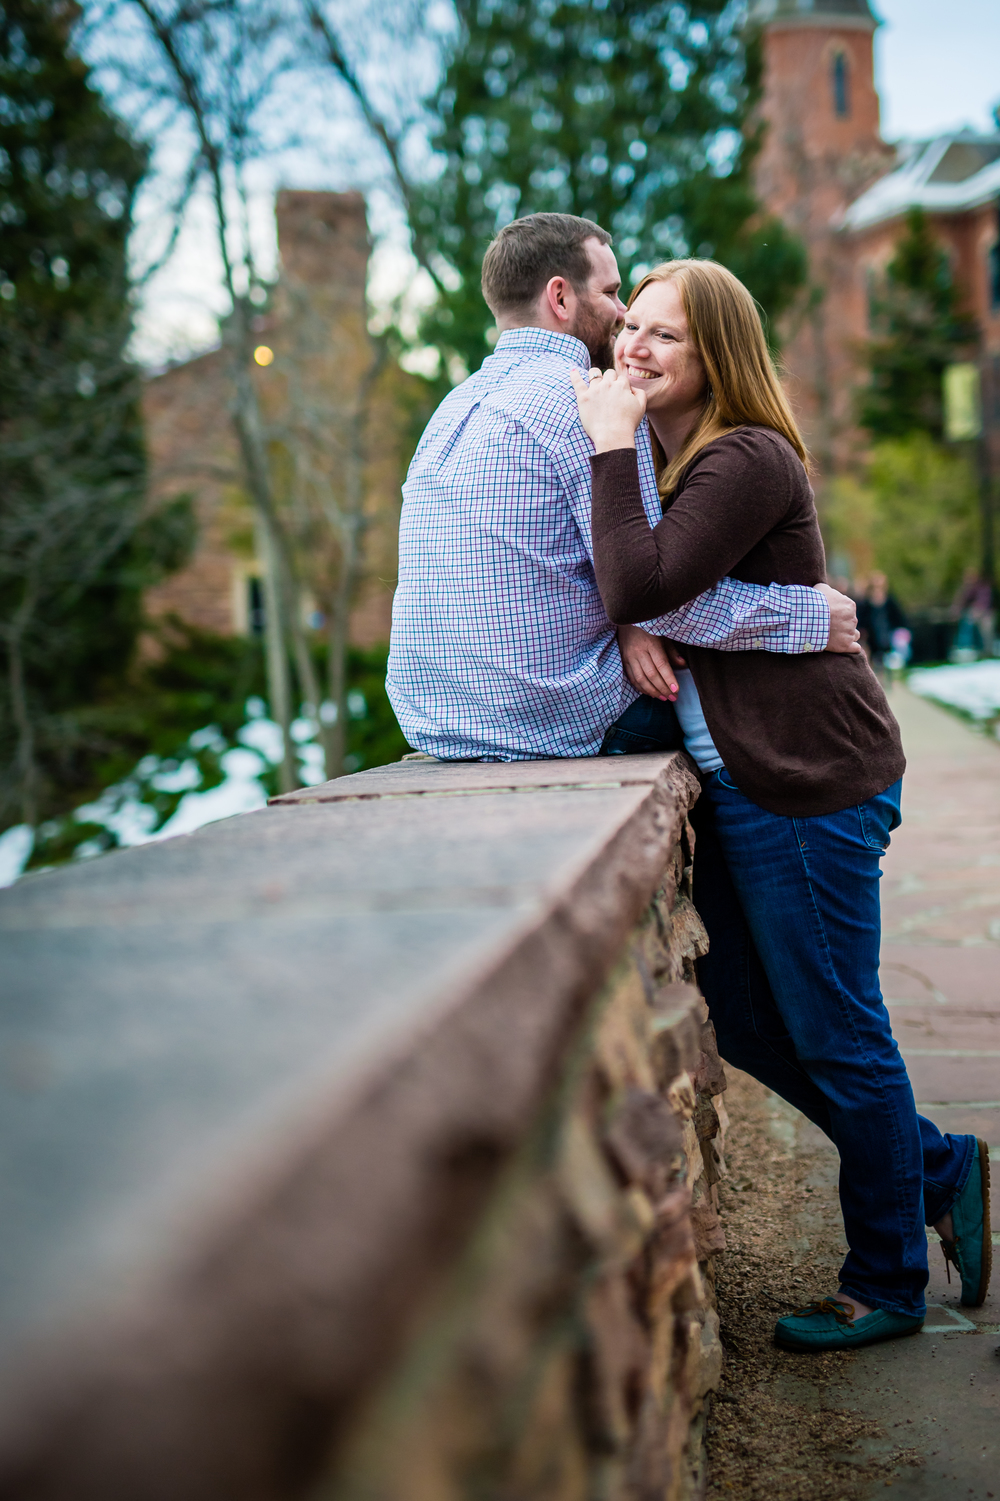 Engagements taken at CU in Boulder Colorado.